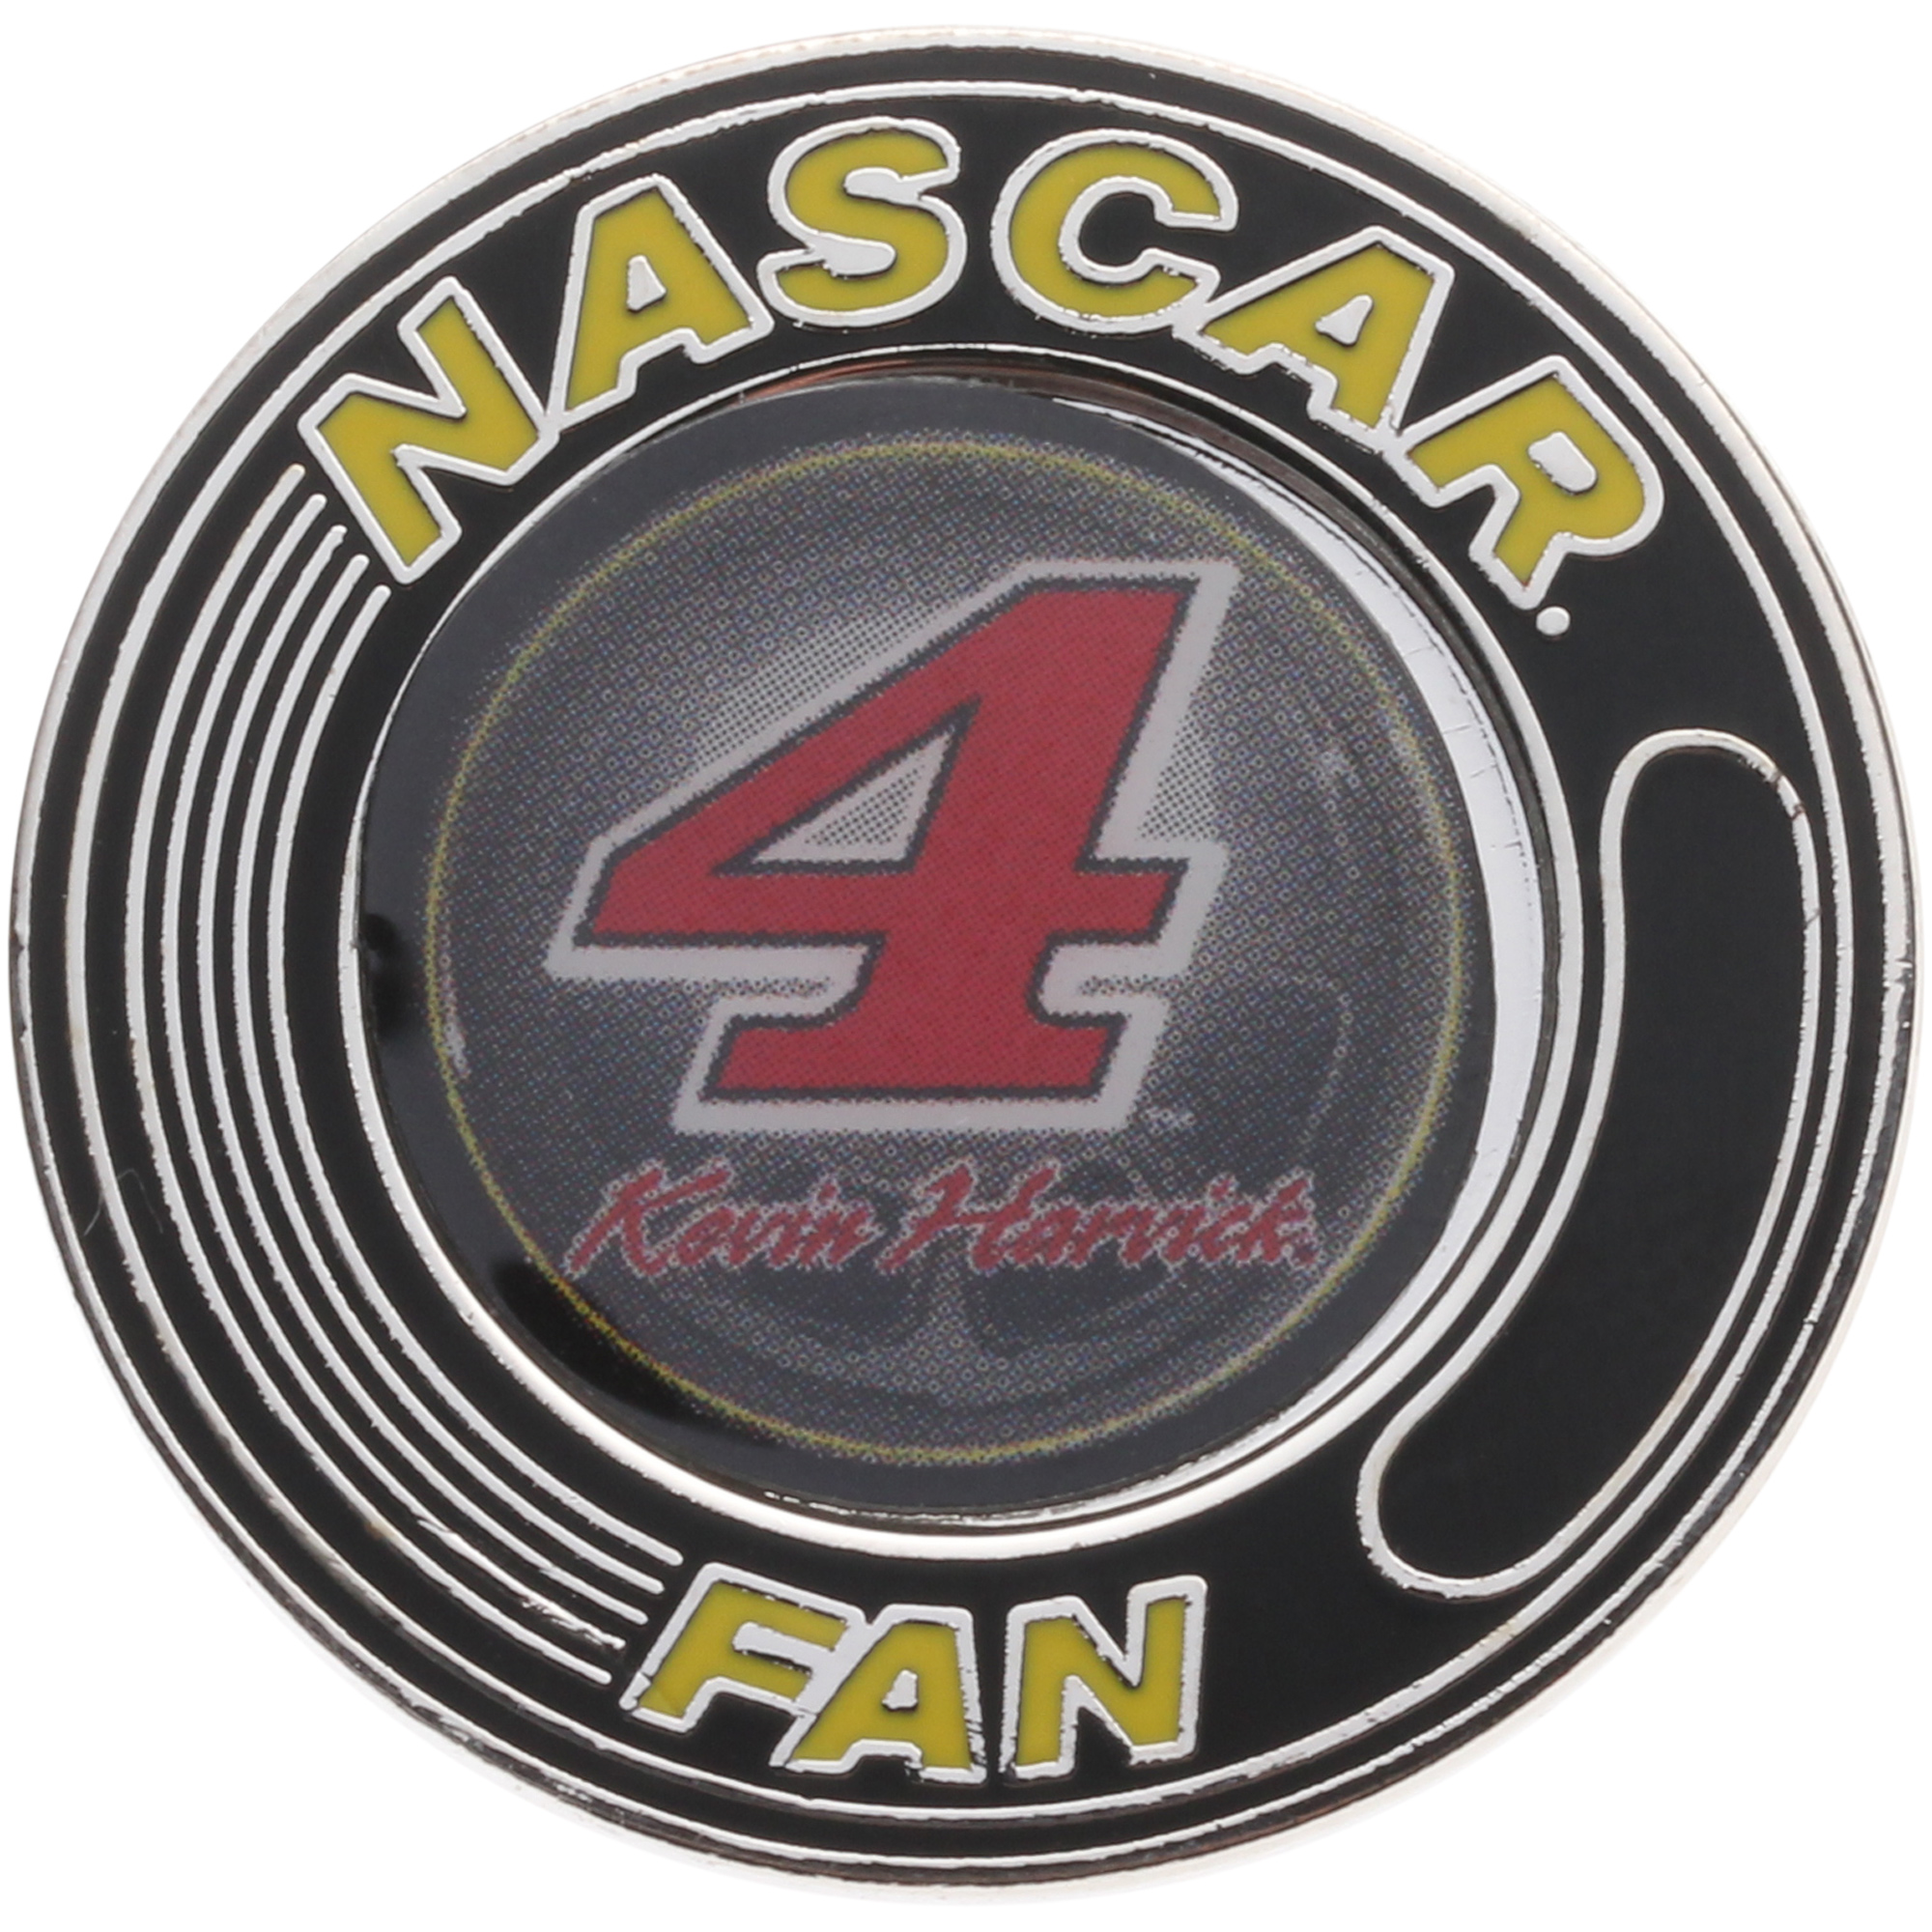 Kevin Harvick WinCraft Hard Insert Red Number NASCAR Fan Pin - No Size